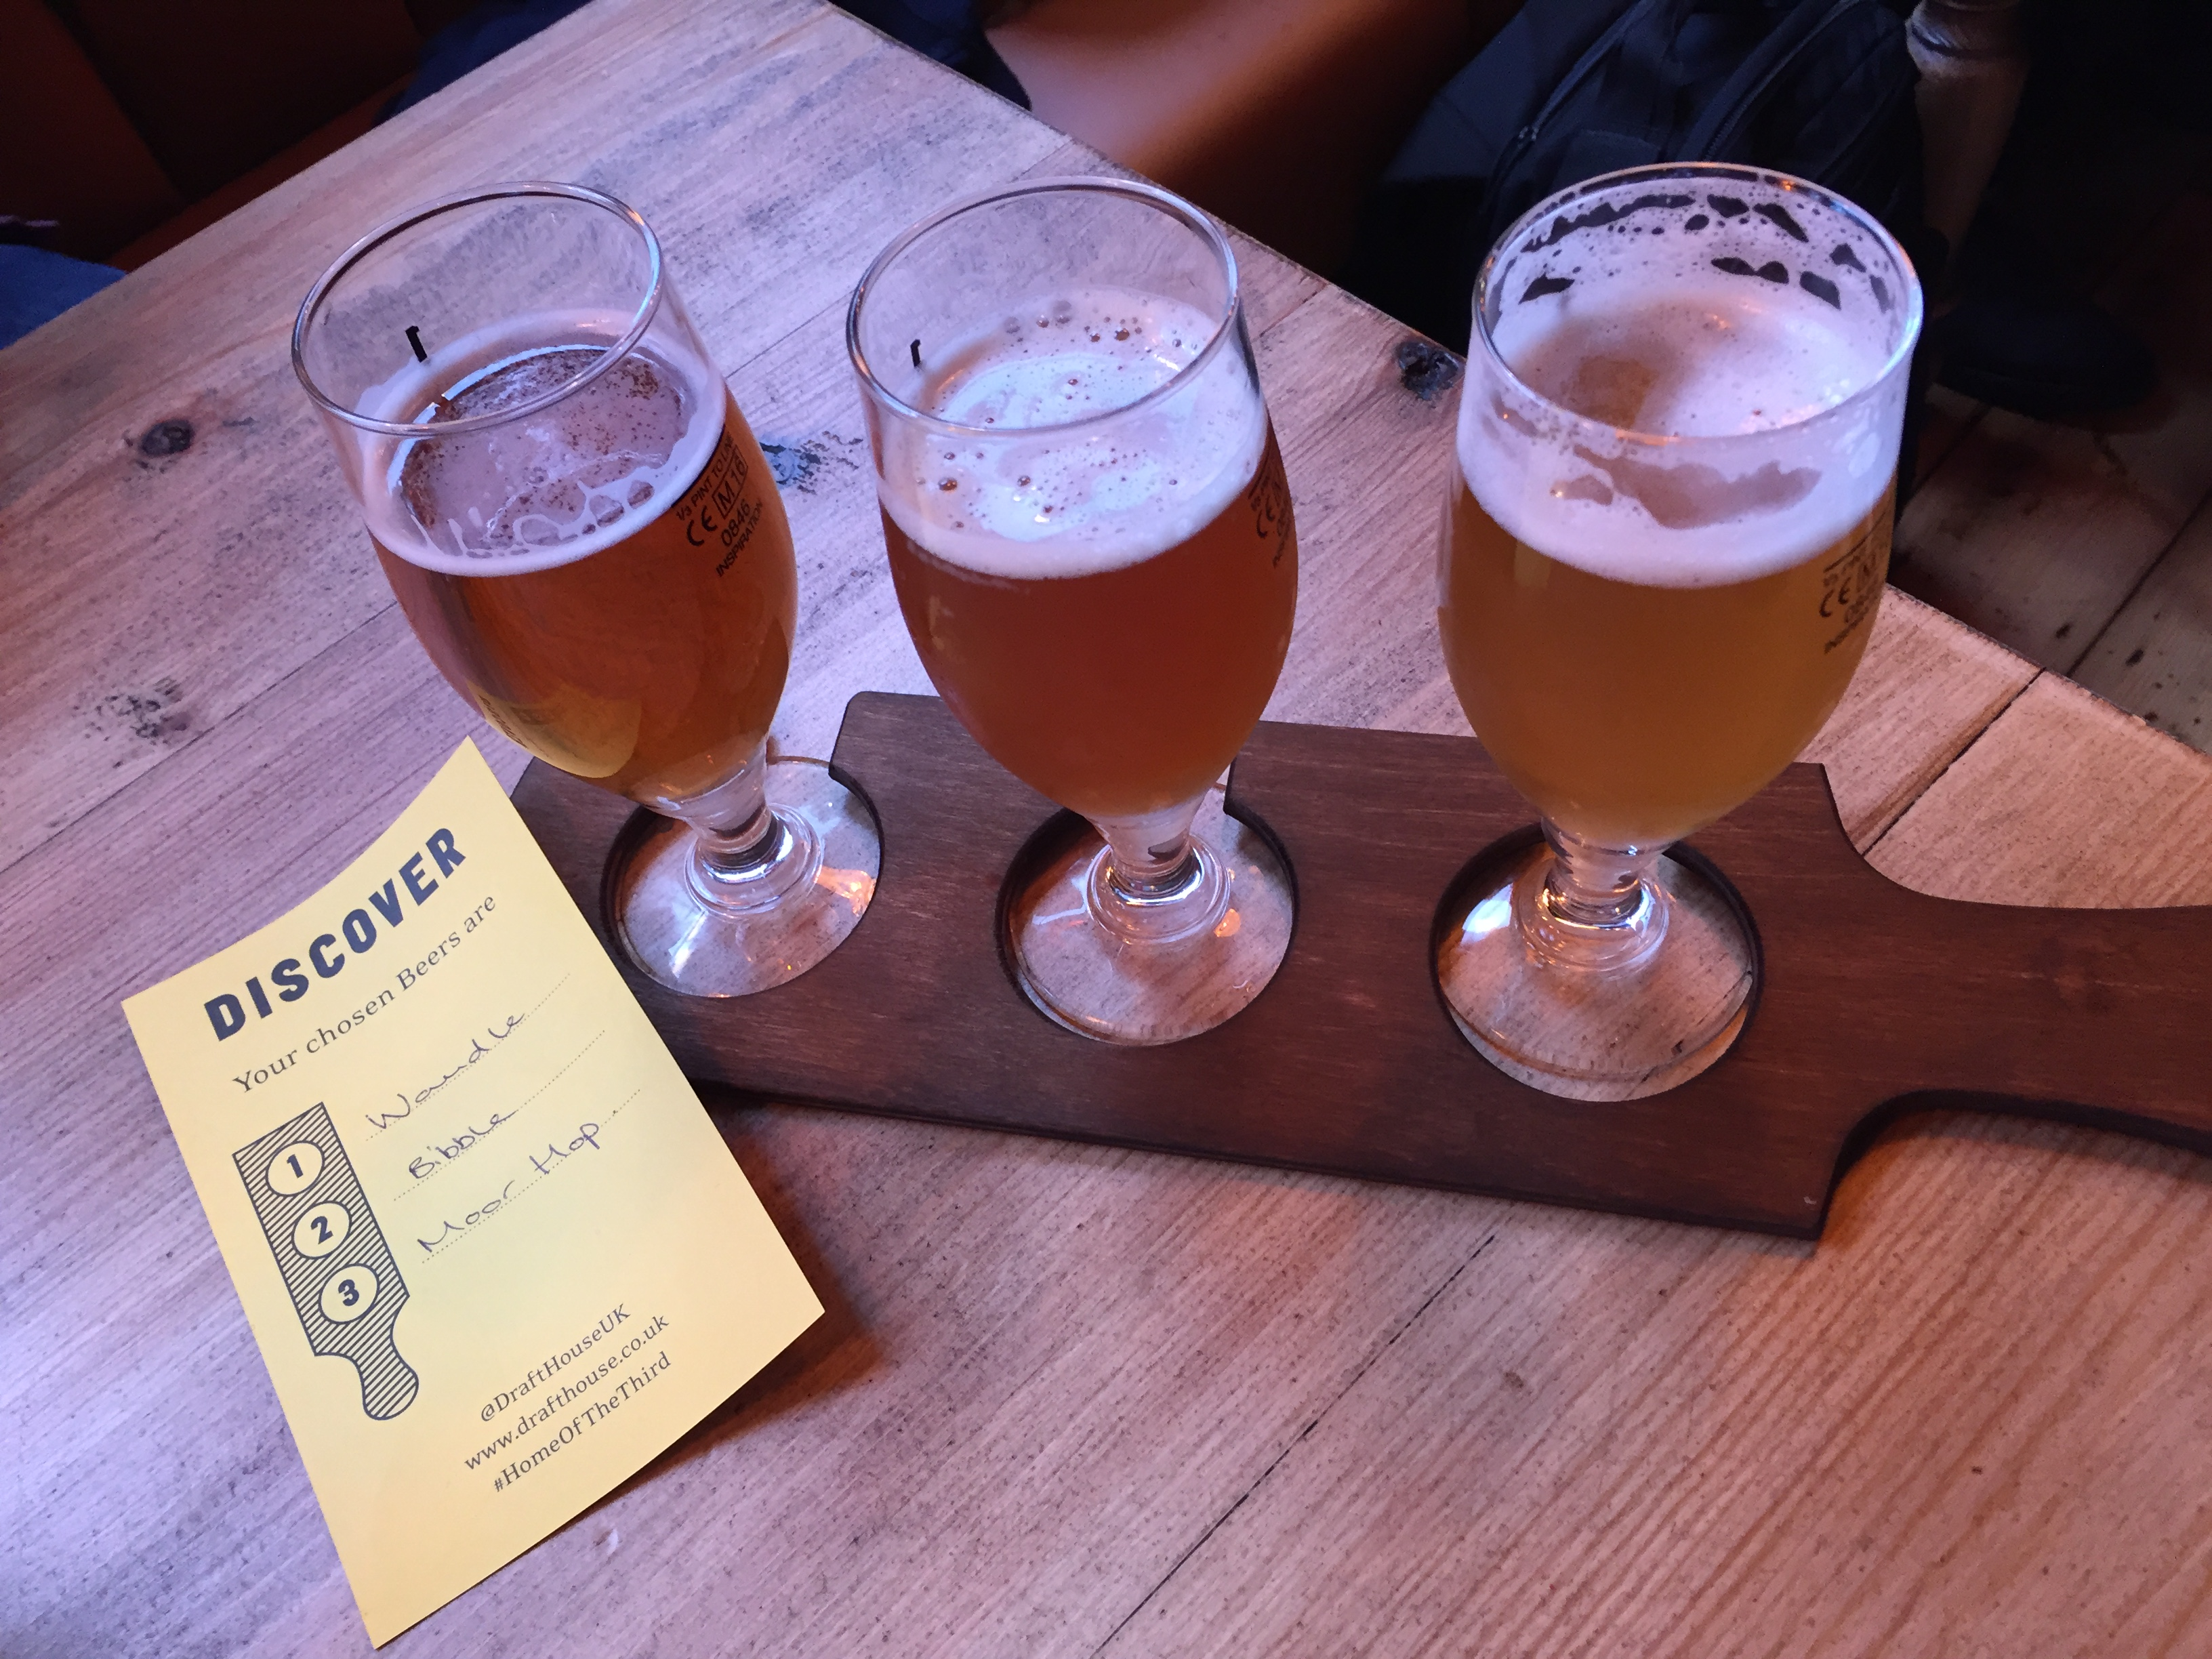 Beer paddle at The Tankard - kenningtonrunoff.com